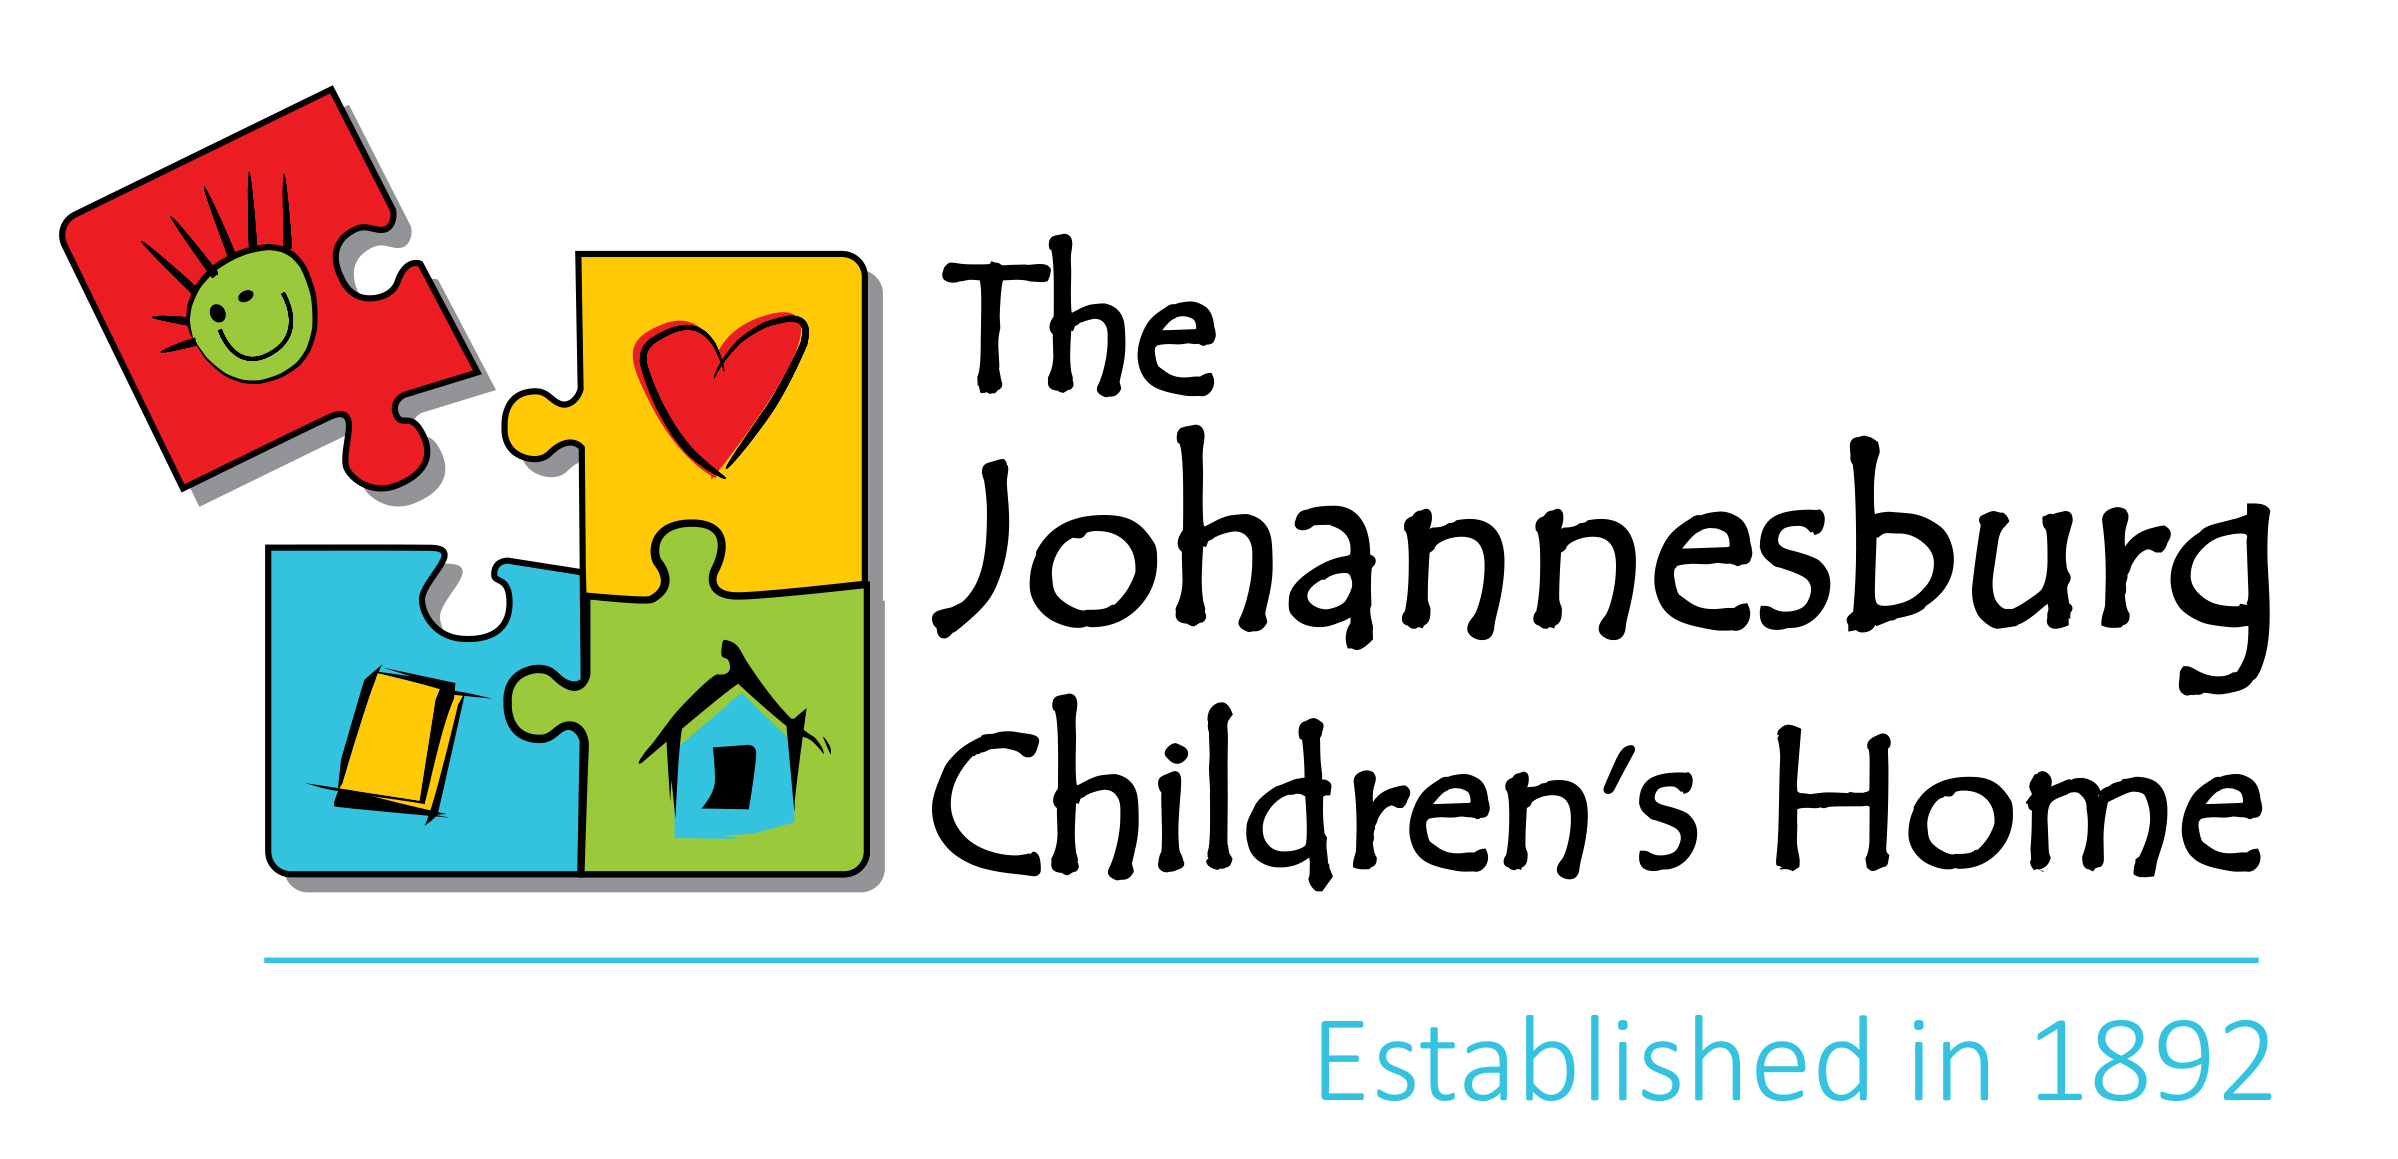 The Johannesburg Children's Home